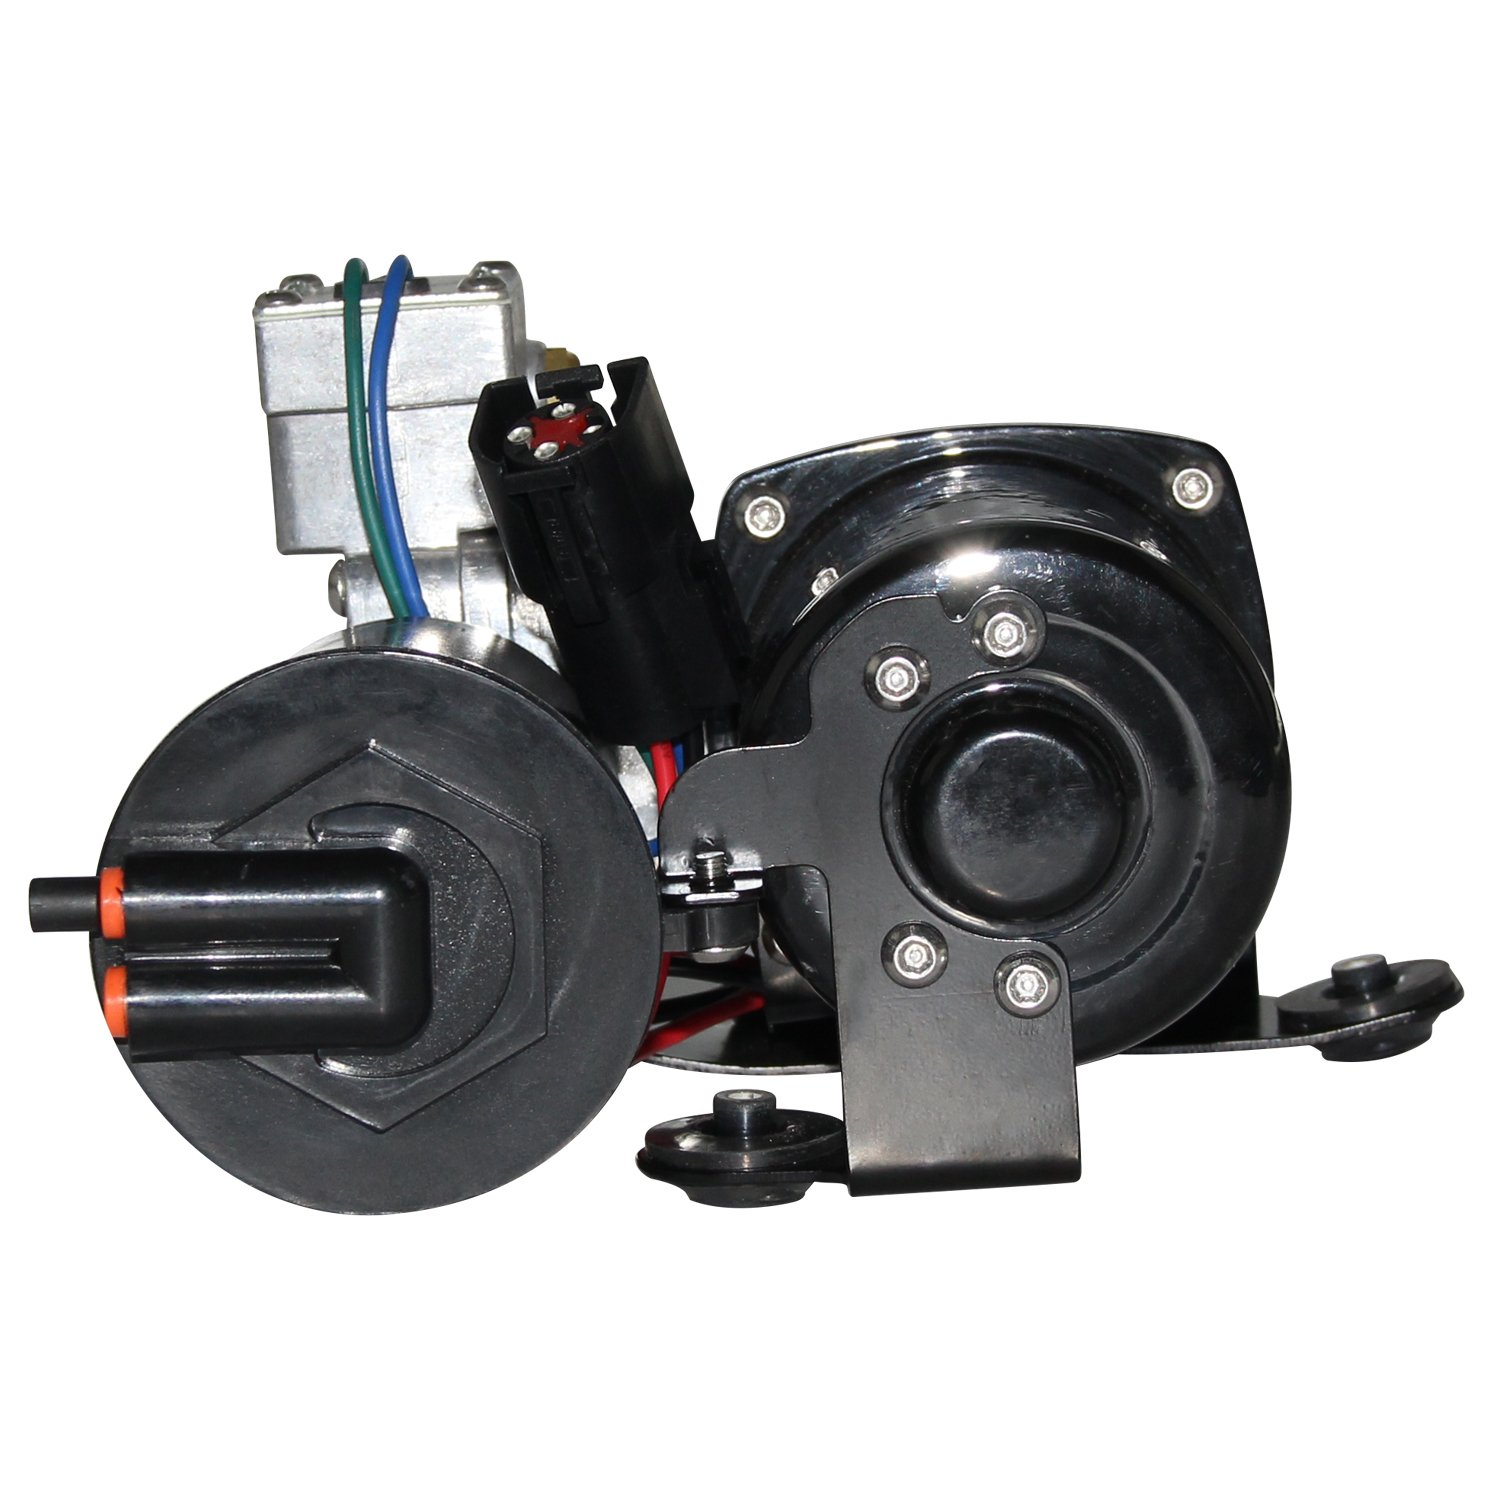 Salem Auto Parts Air Suspension Compressor Pump for 2007 2008 2009 2010 2011 2012 2013 Ford Expedition Lincoln Navigator 7L1Z5319AE